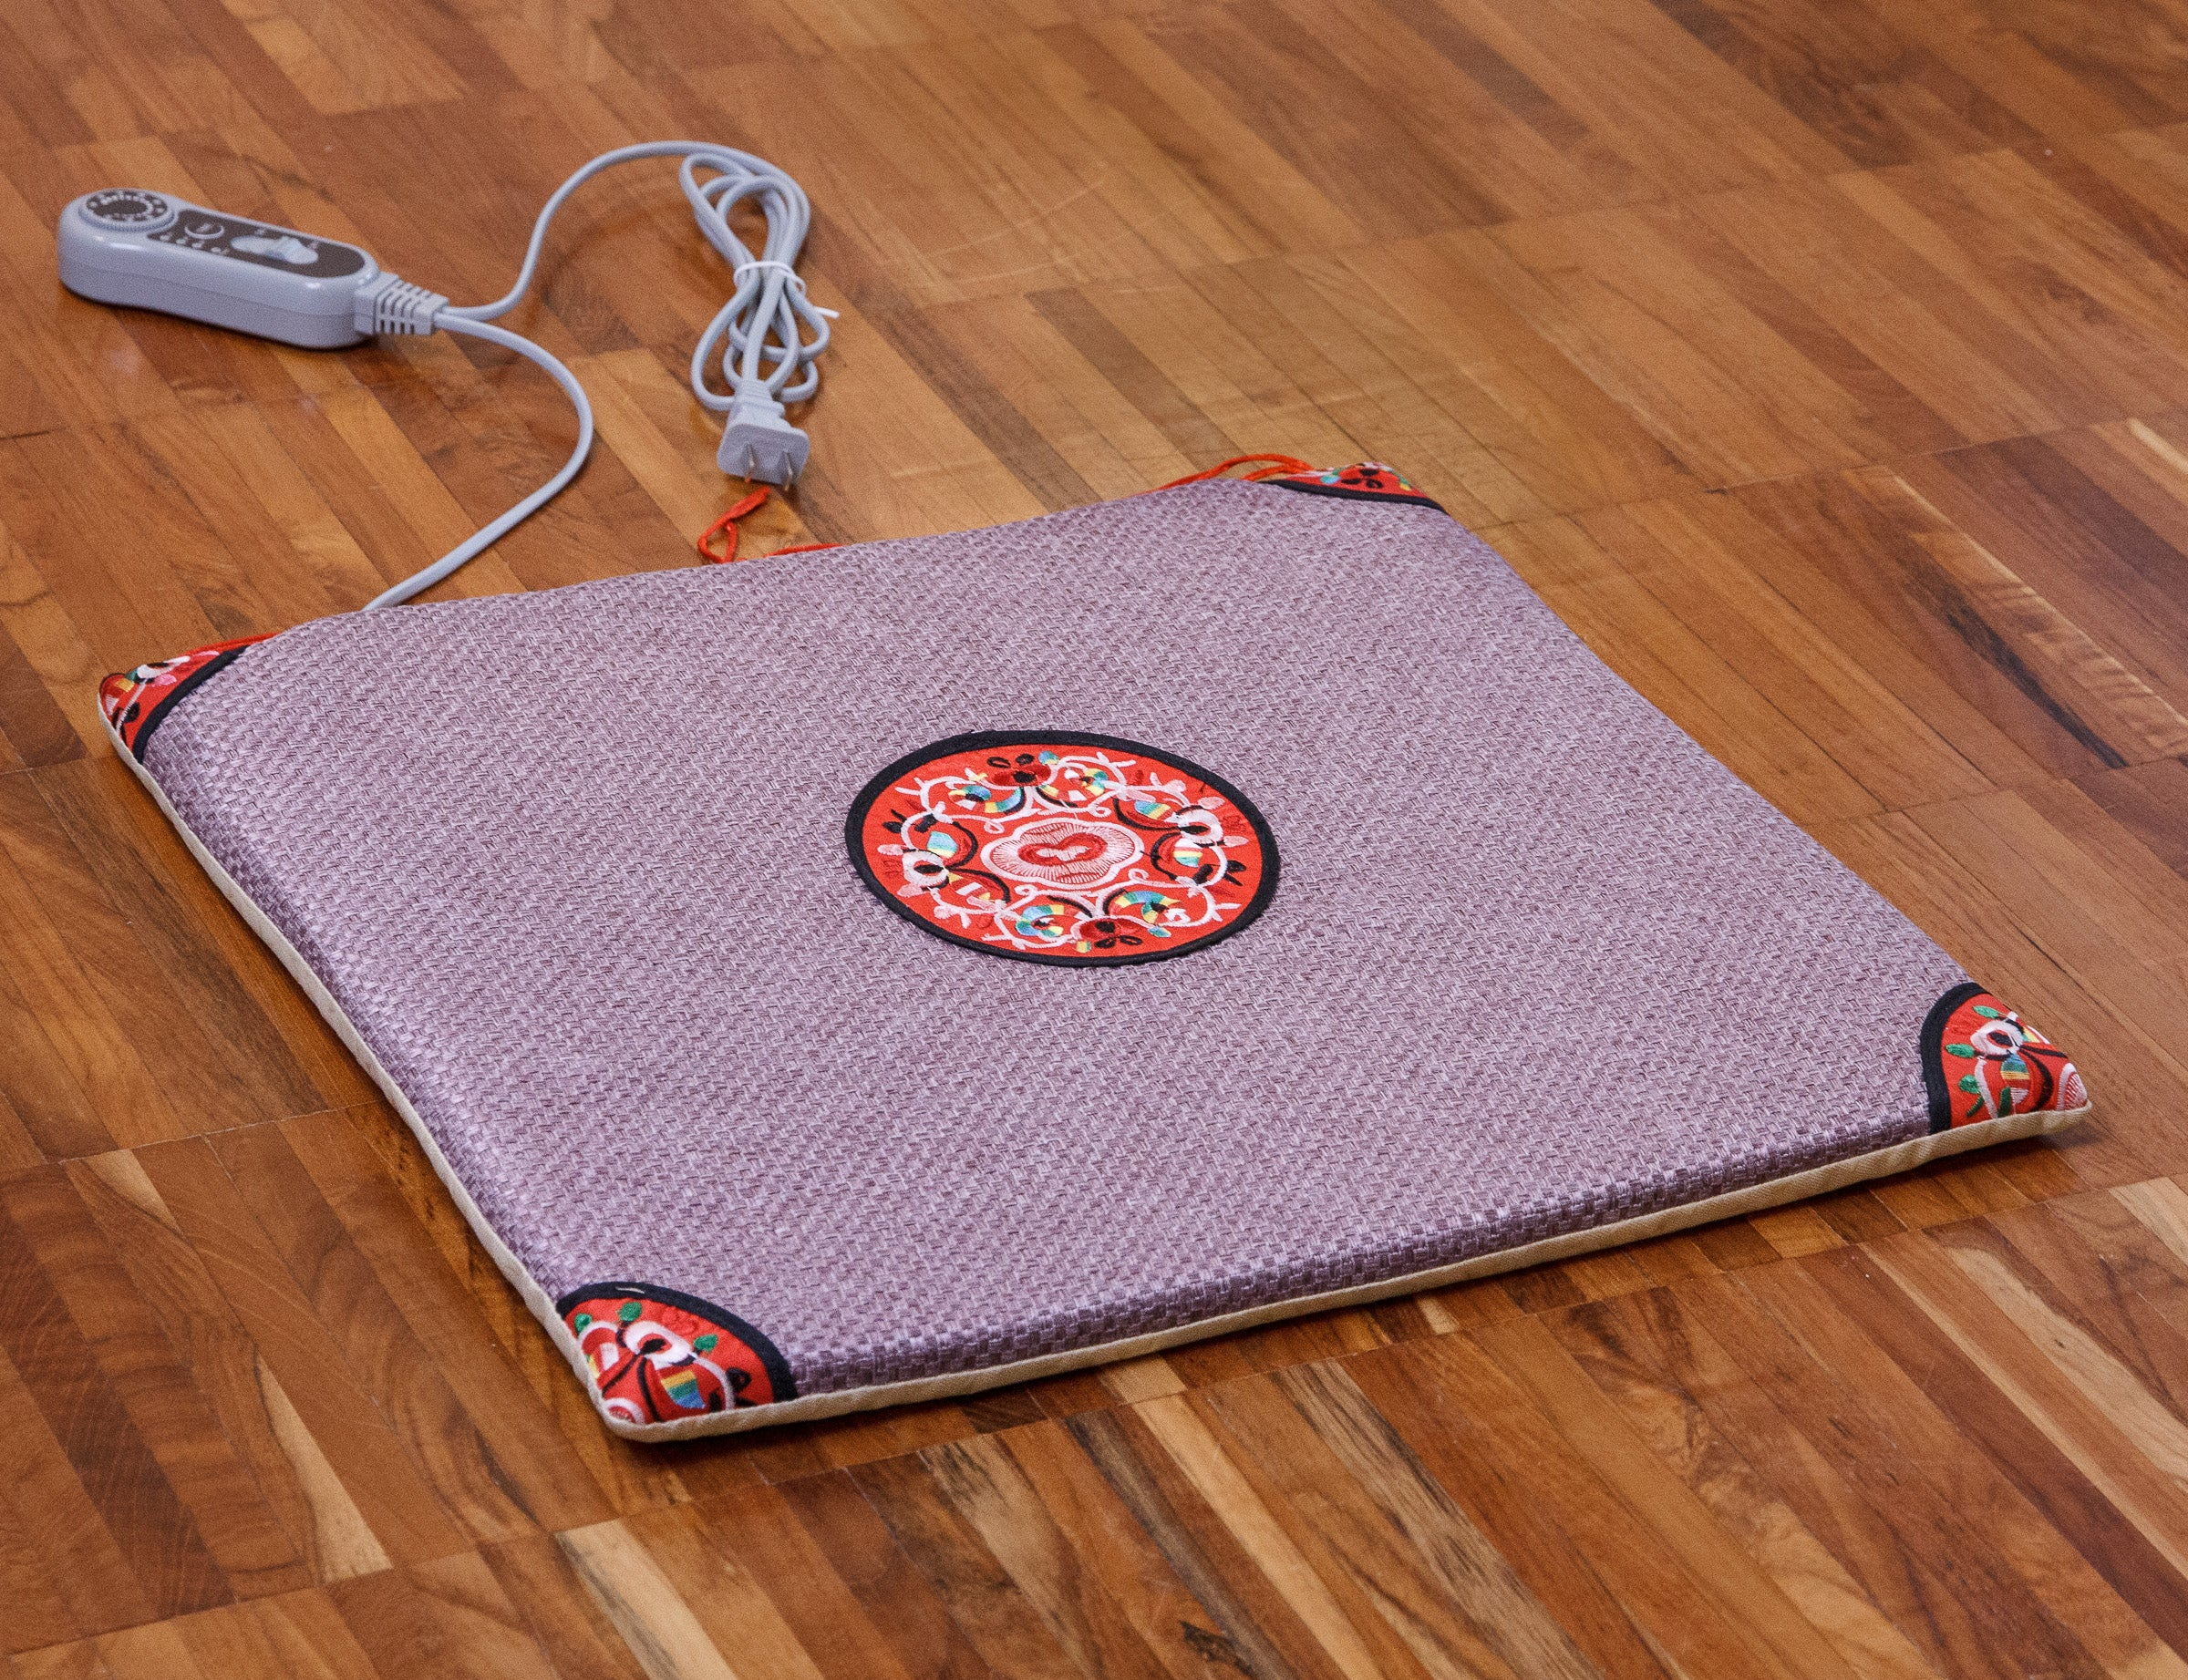 Heated Meditation Pad